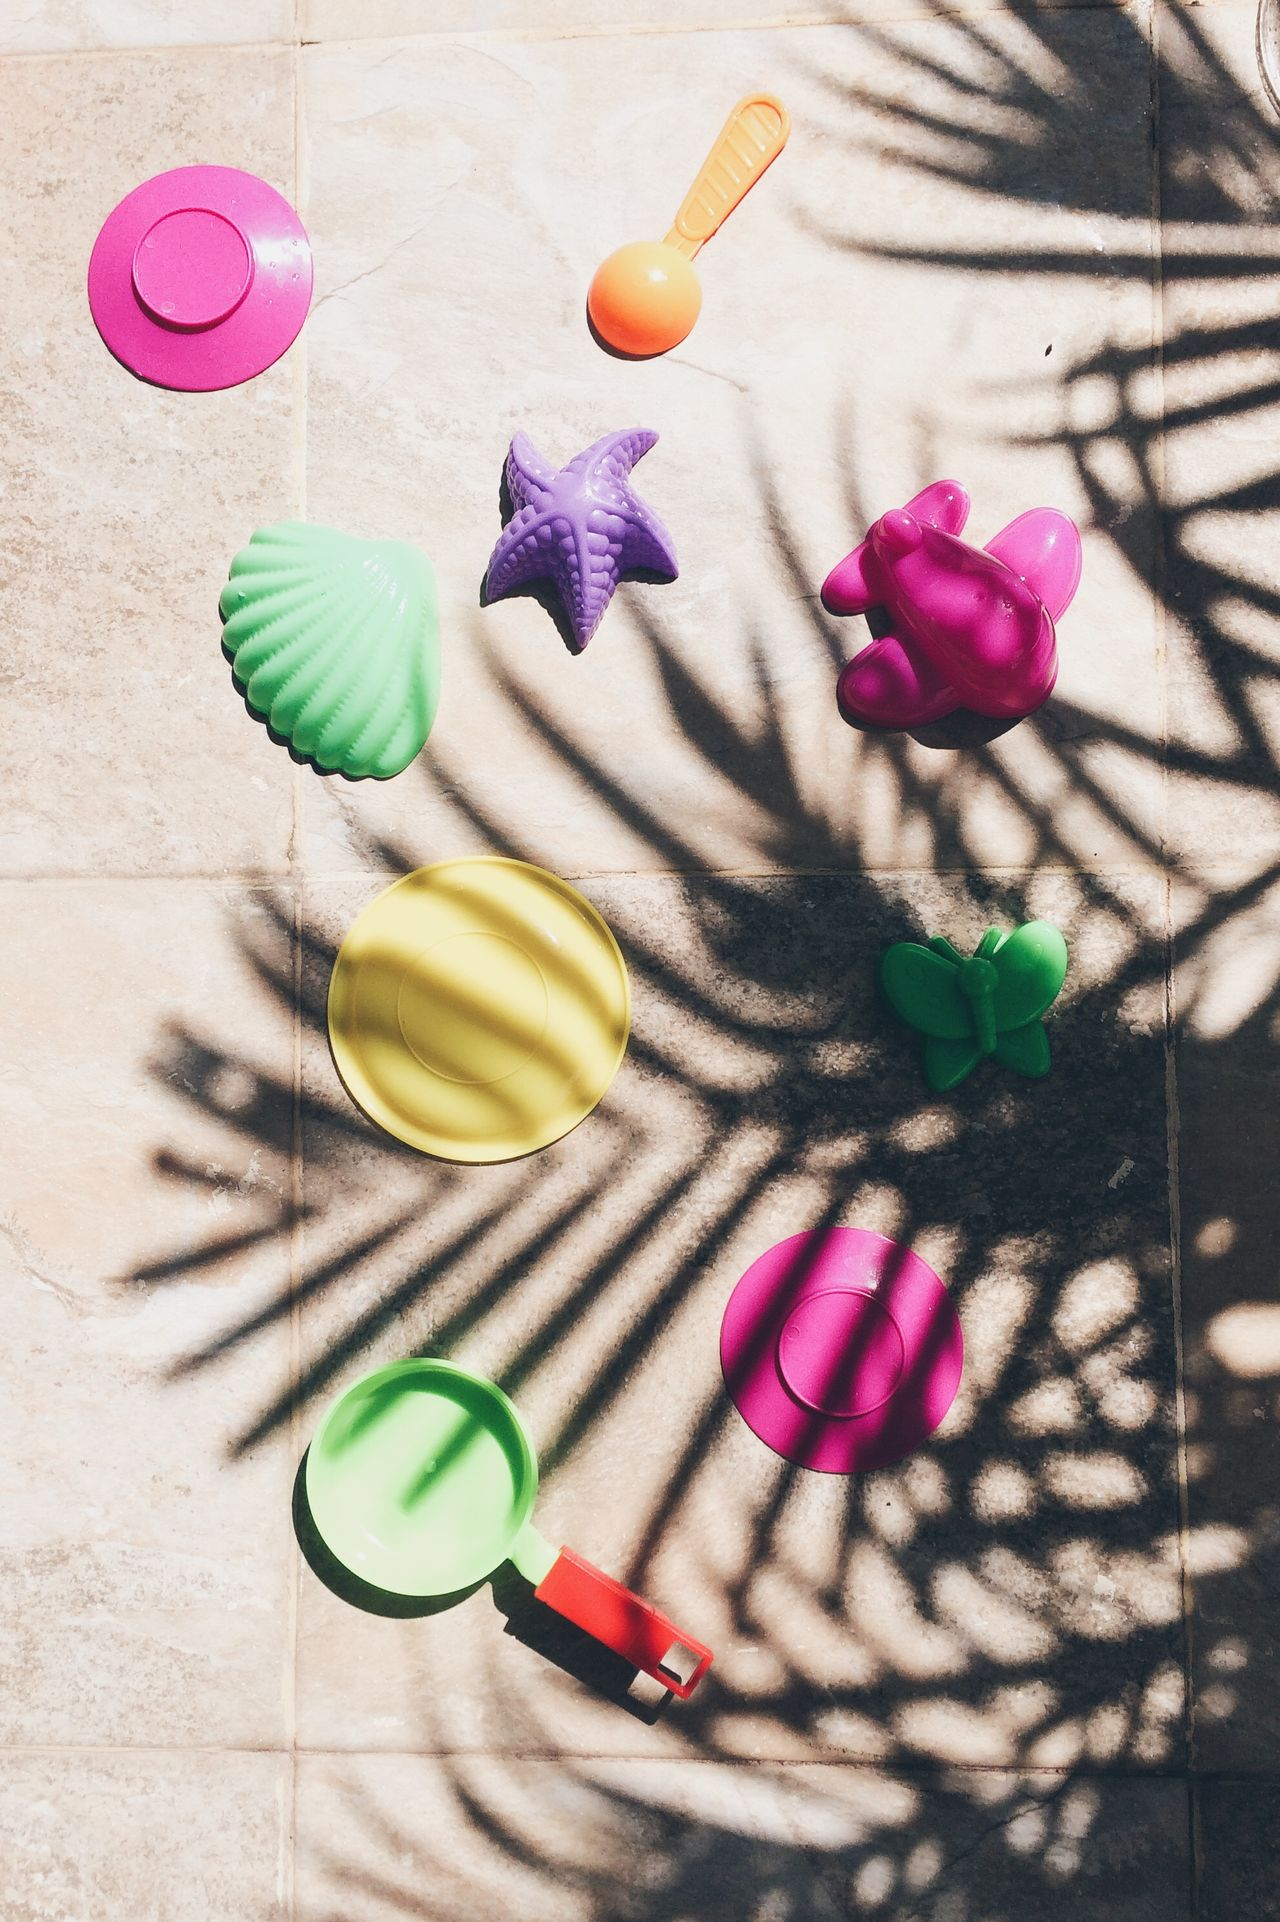 High angle view of plastic toys on floor during sunny day